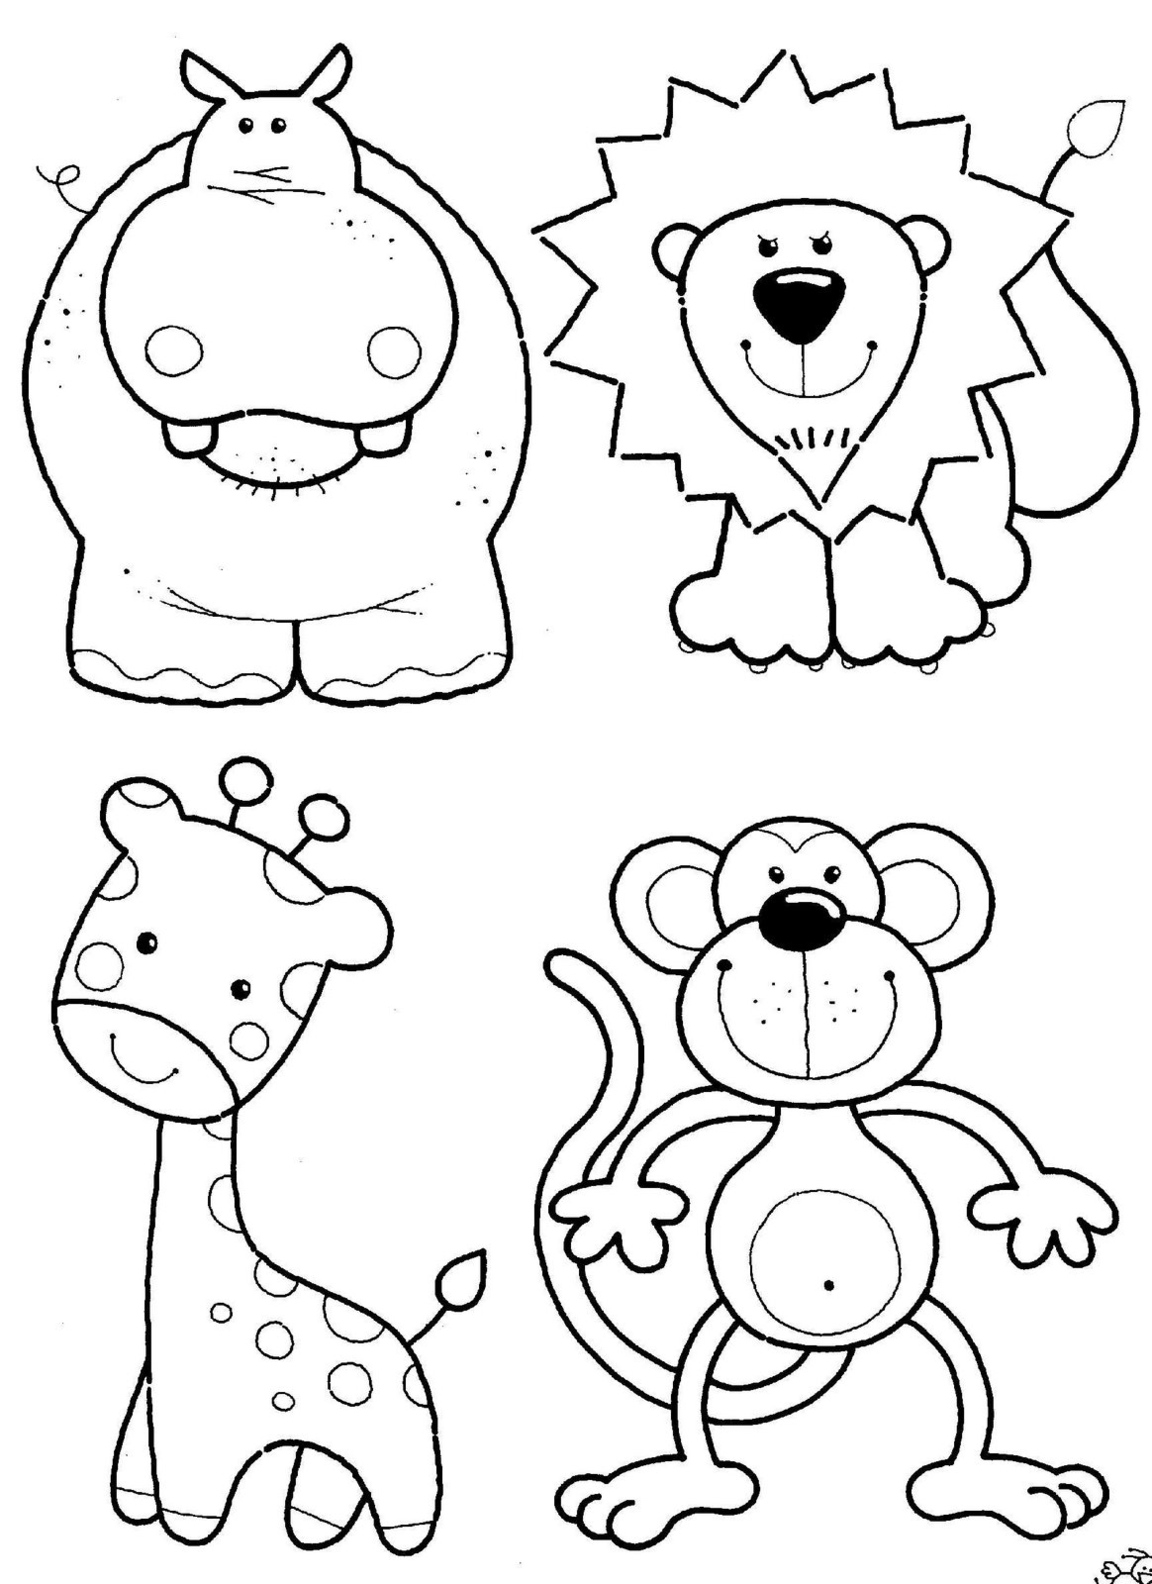 jungle animal coloring pages cute animal coloring pages best coloring pages for kids pages jungle coloring animal